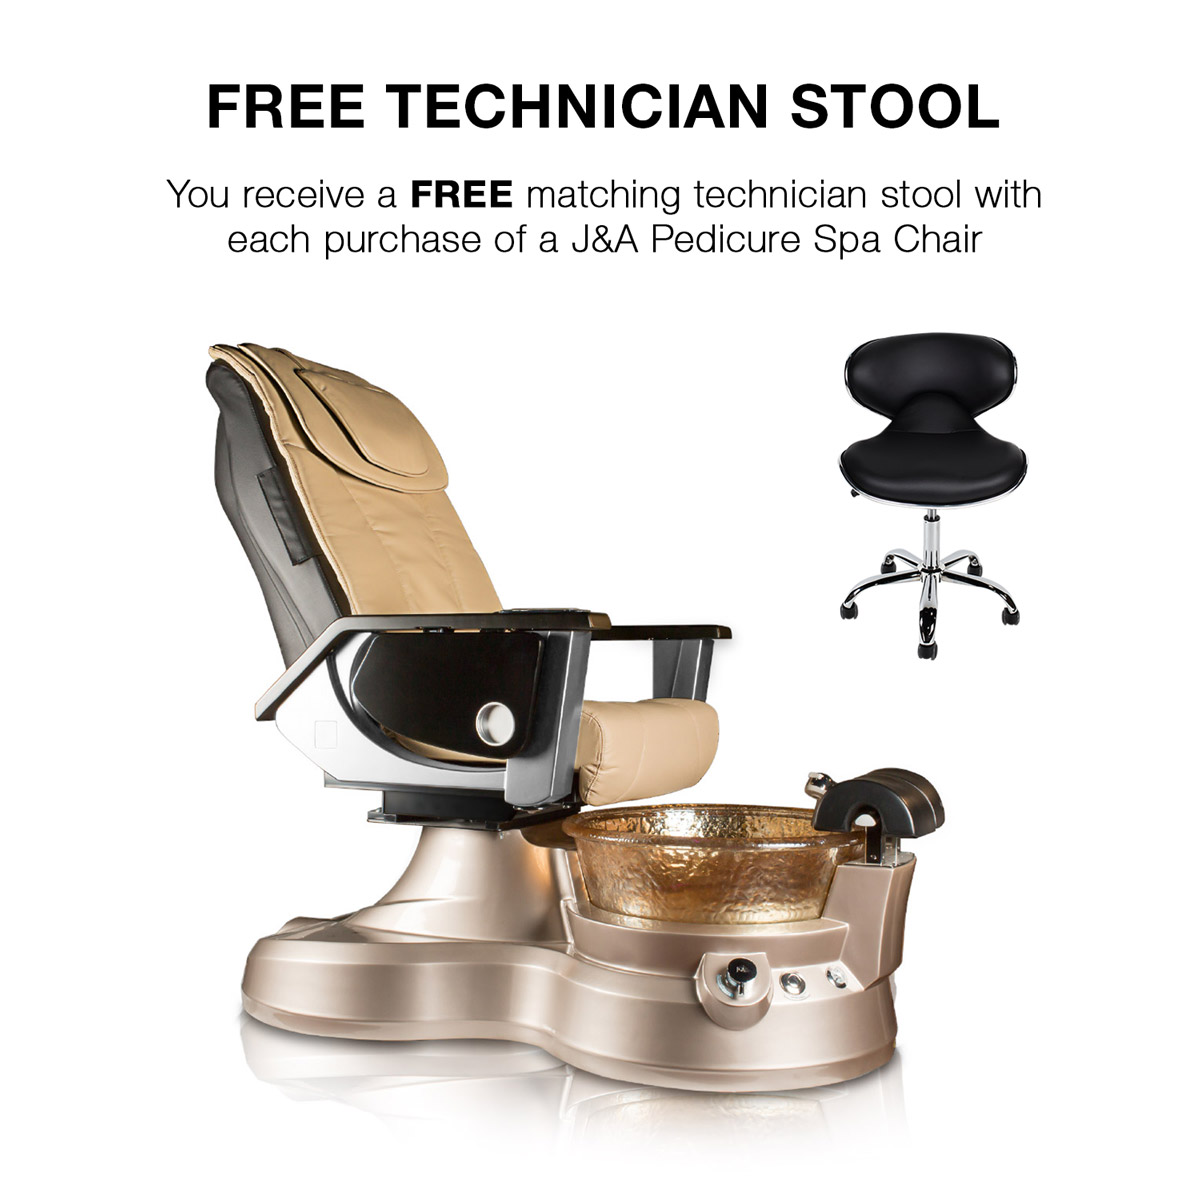 Lenox LX Pipeless Pedicure Spa Chair alternative product image 2